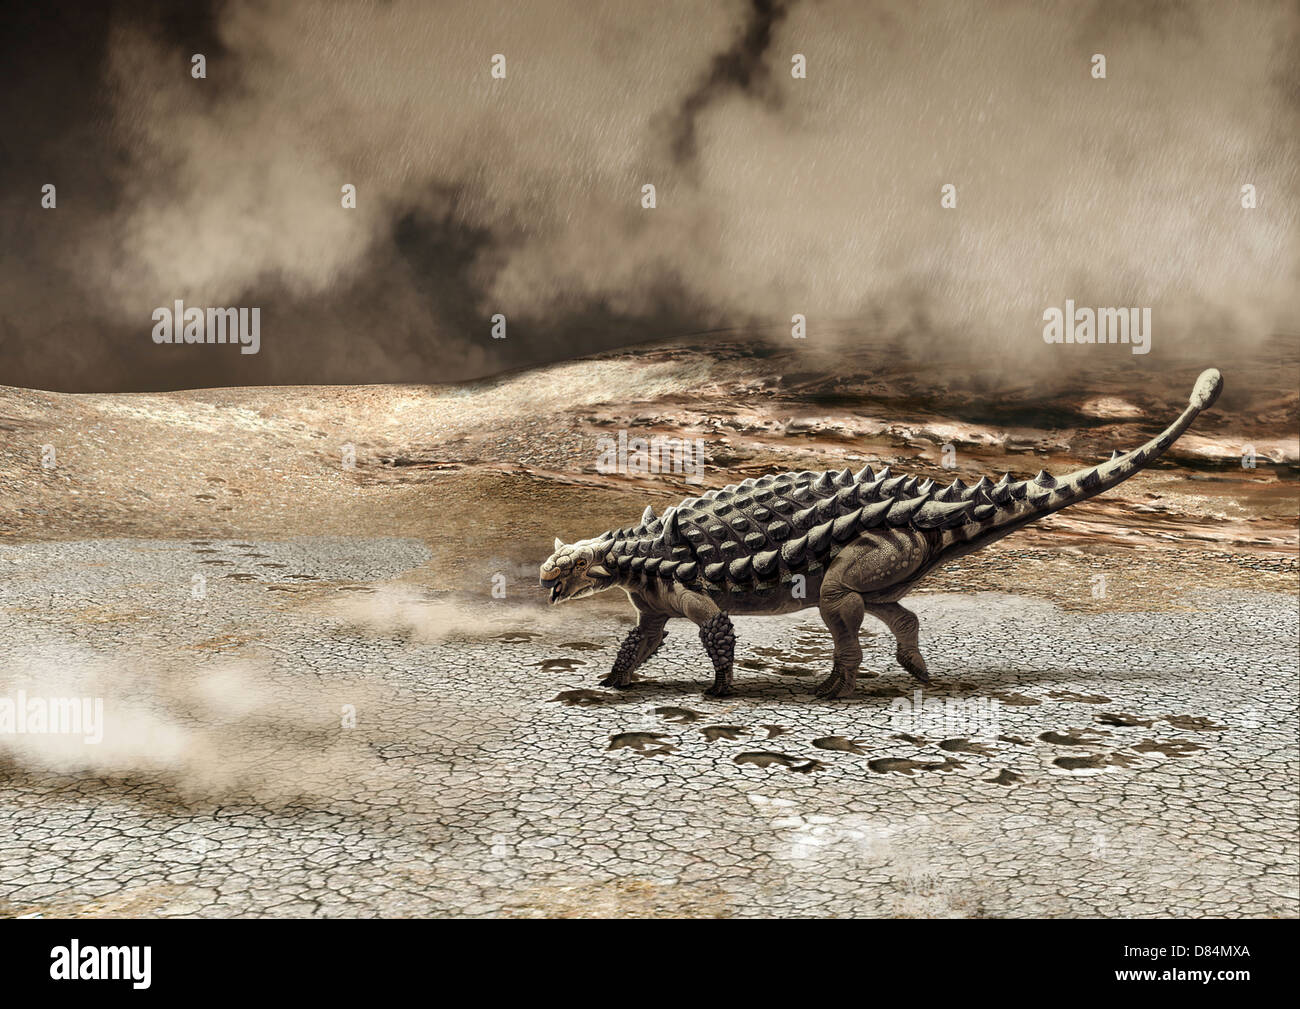 A Saichania chulsanensis dinosaur is caught in a sandstorm. - Stock Image